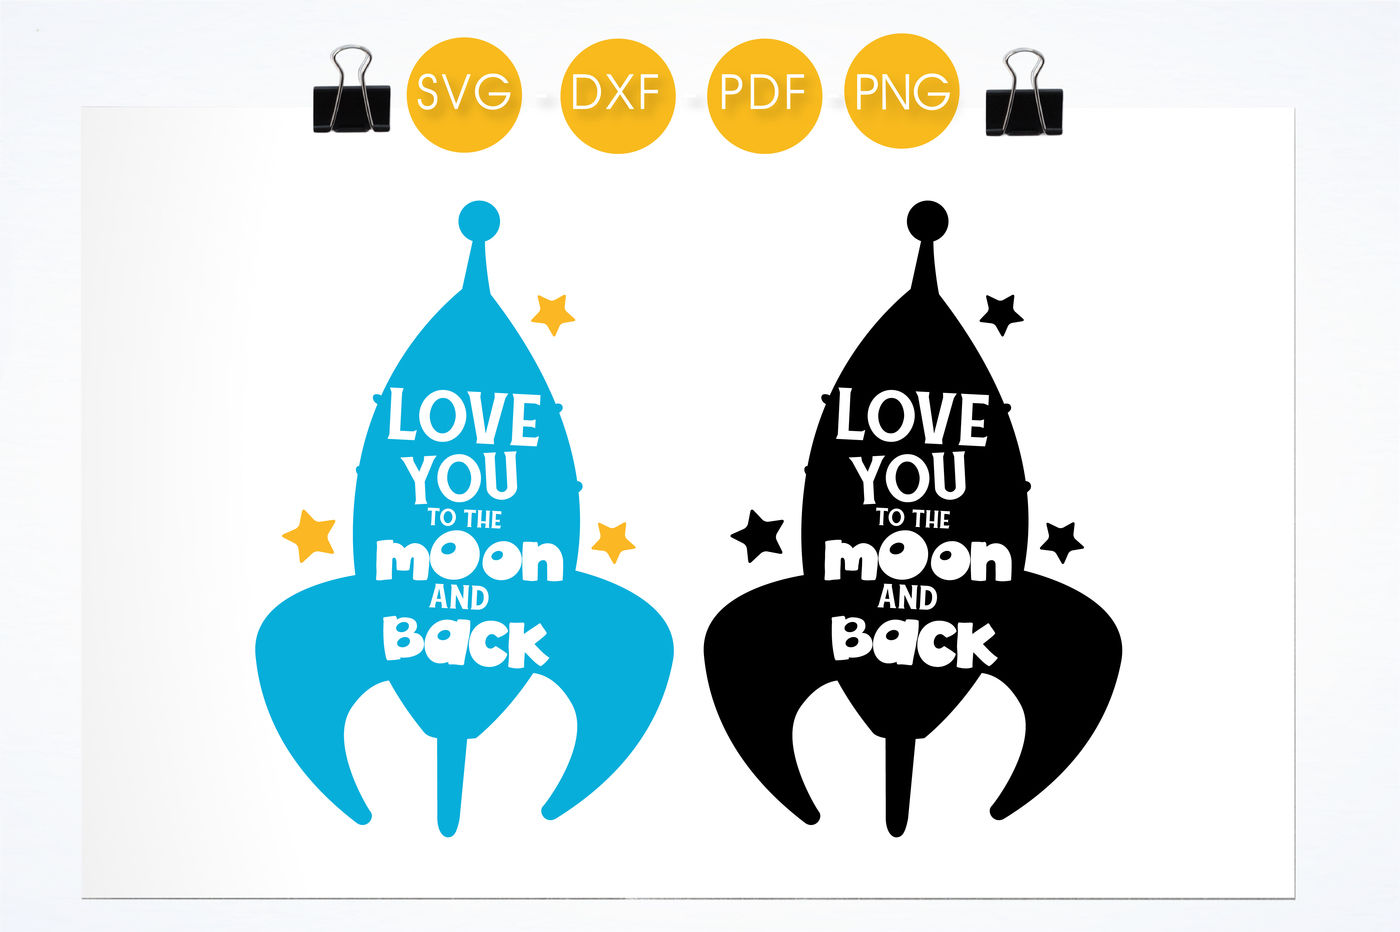 Love You To The Moon And Back Svg Png Eps Dxf Cut File By Prettycuttables Thehungryjpeg Com